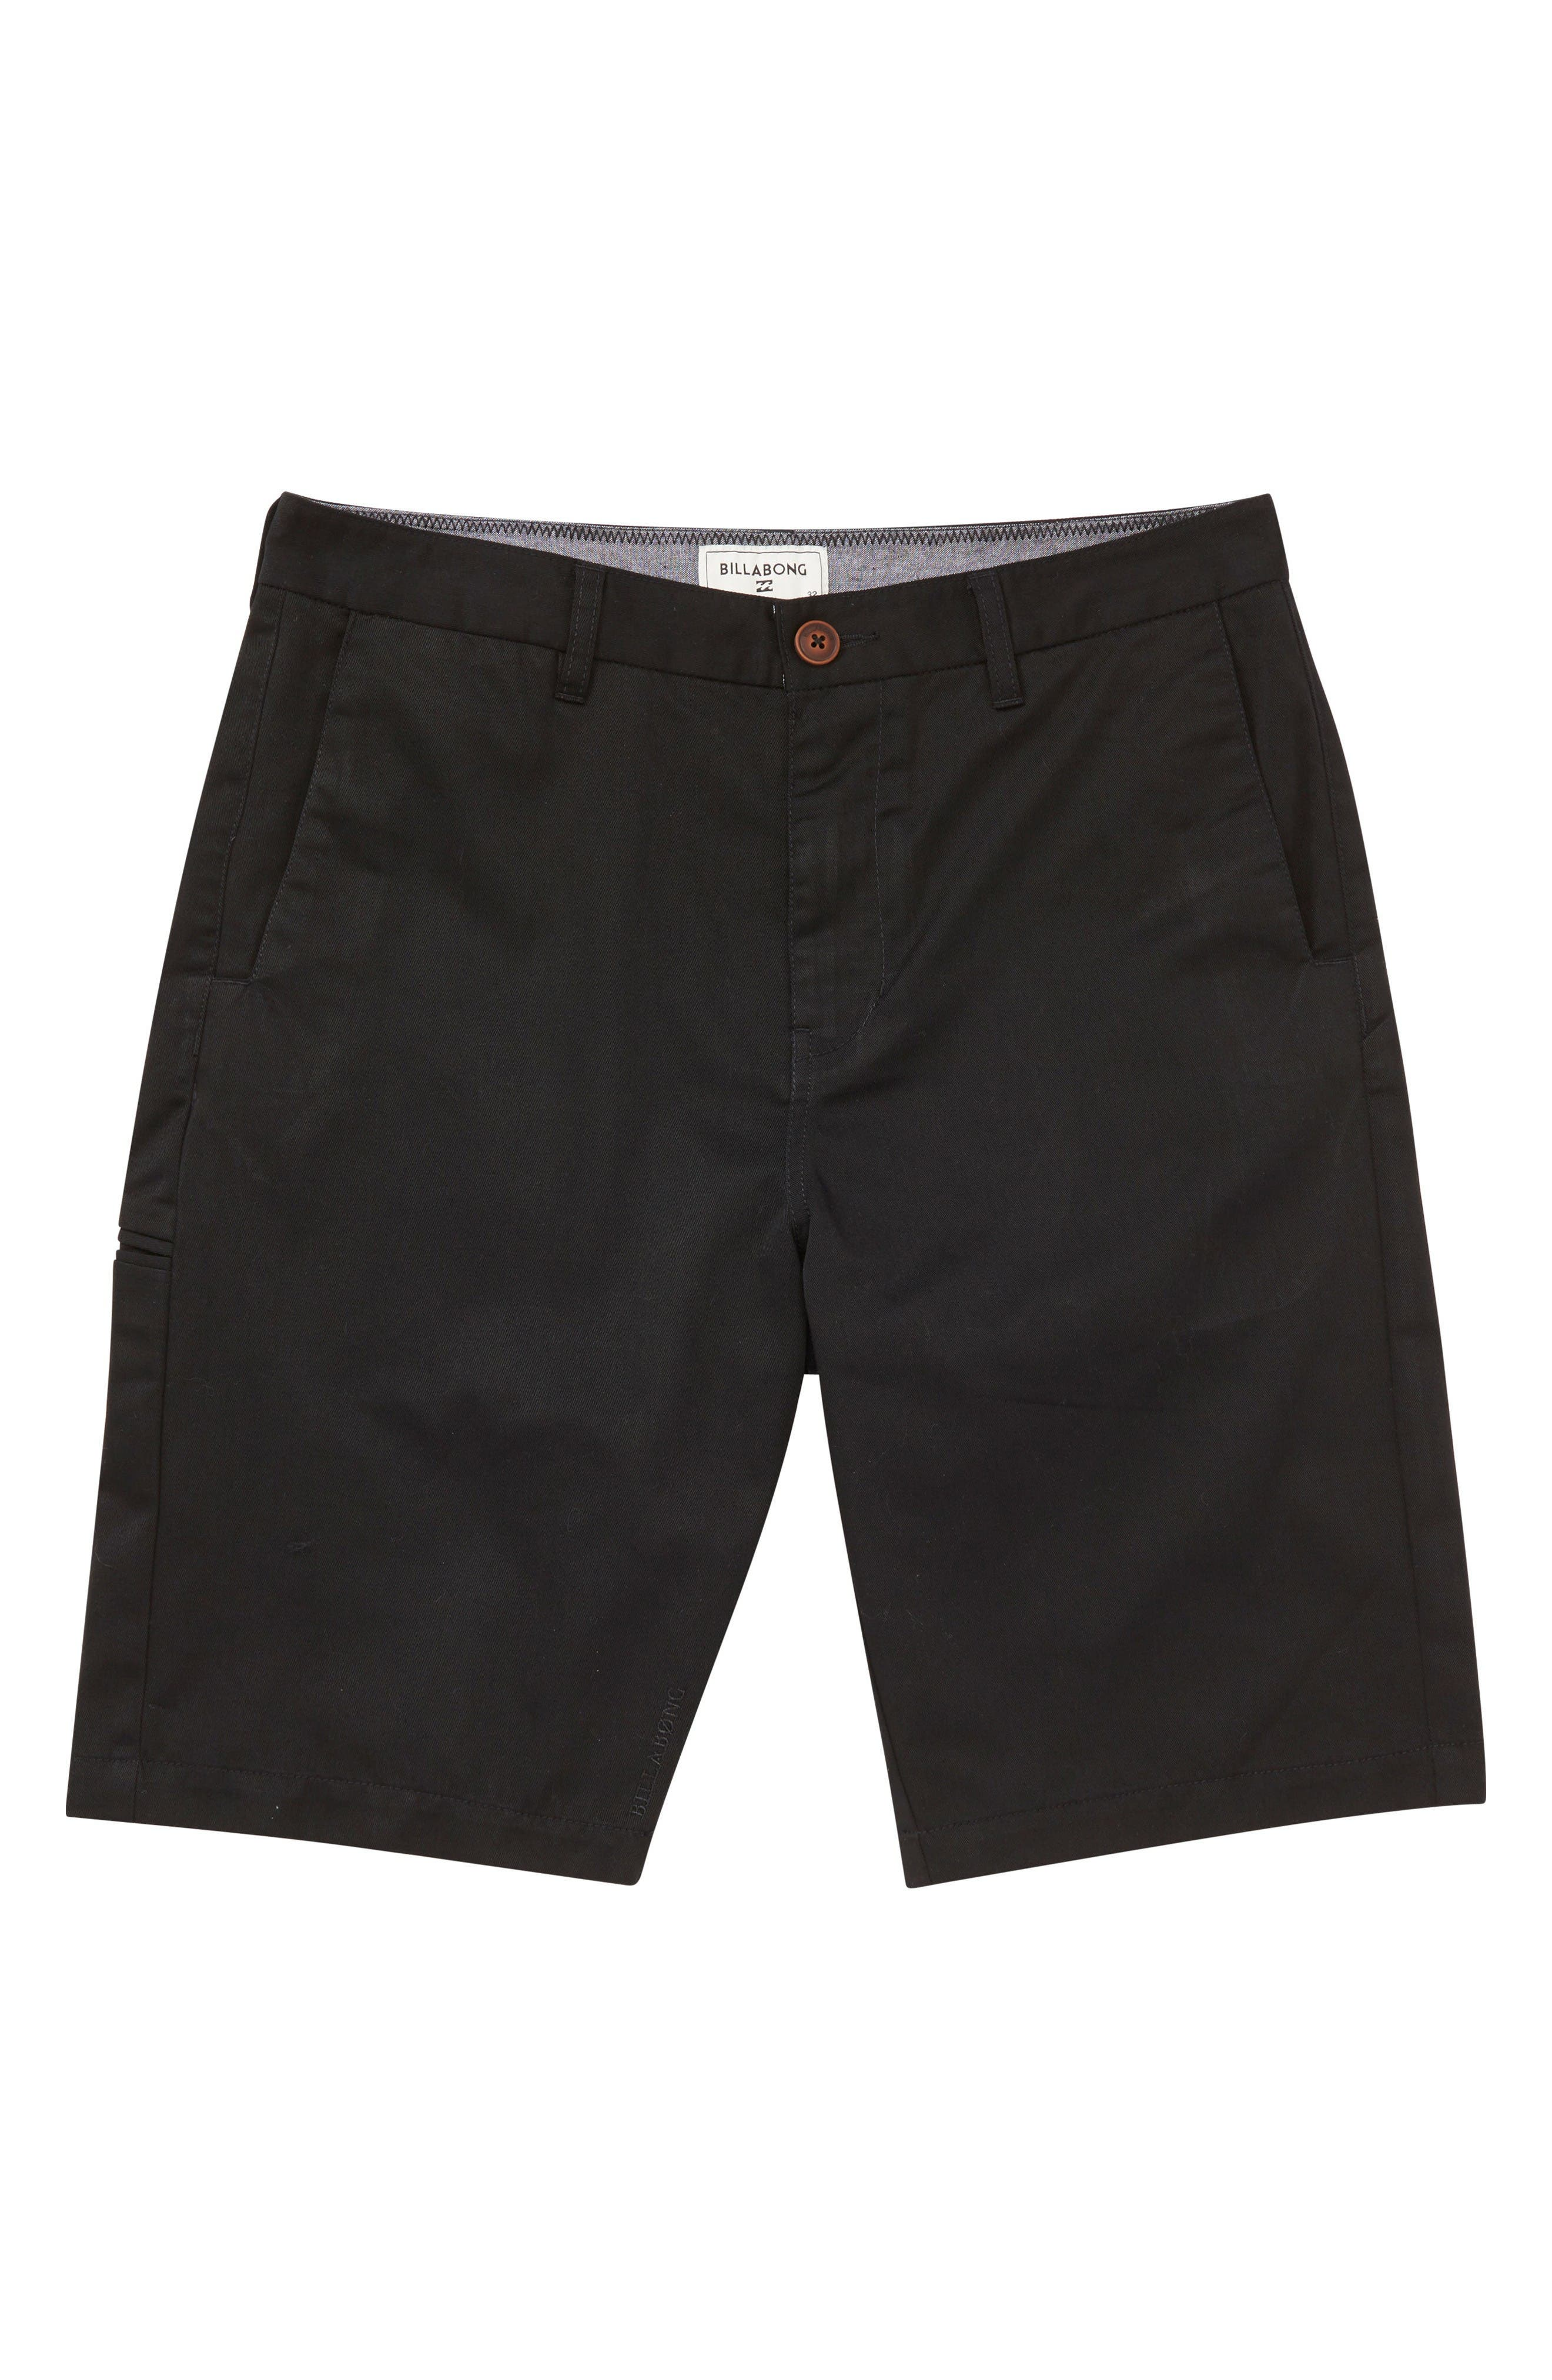 Billabong Carter Walking Shorts (Big Boys)